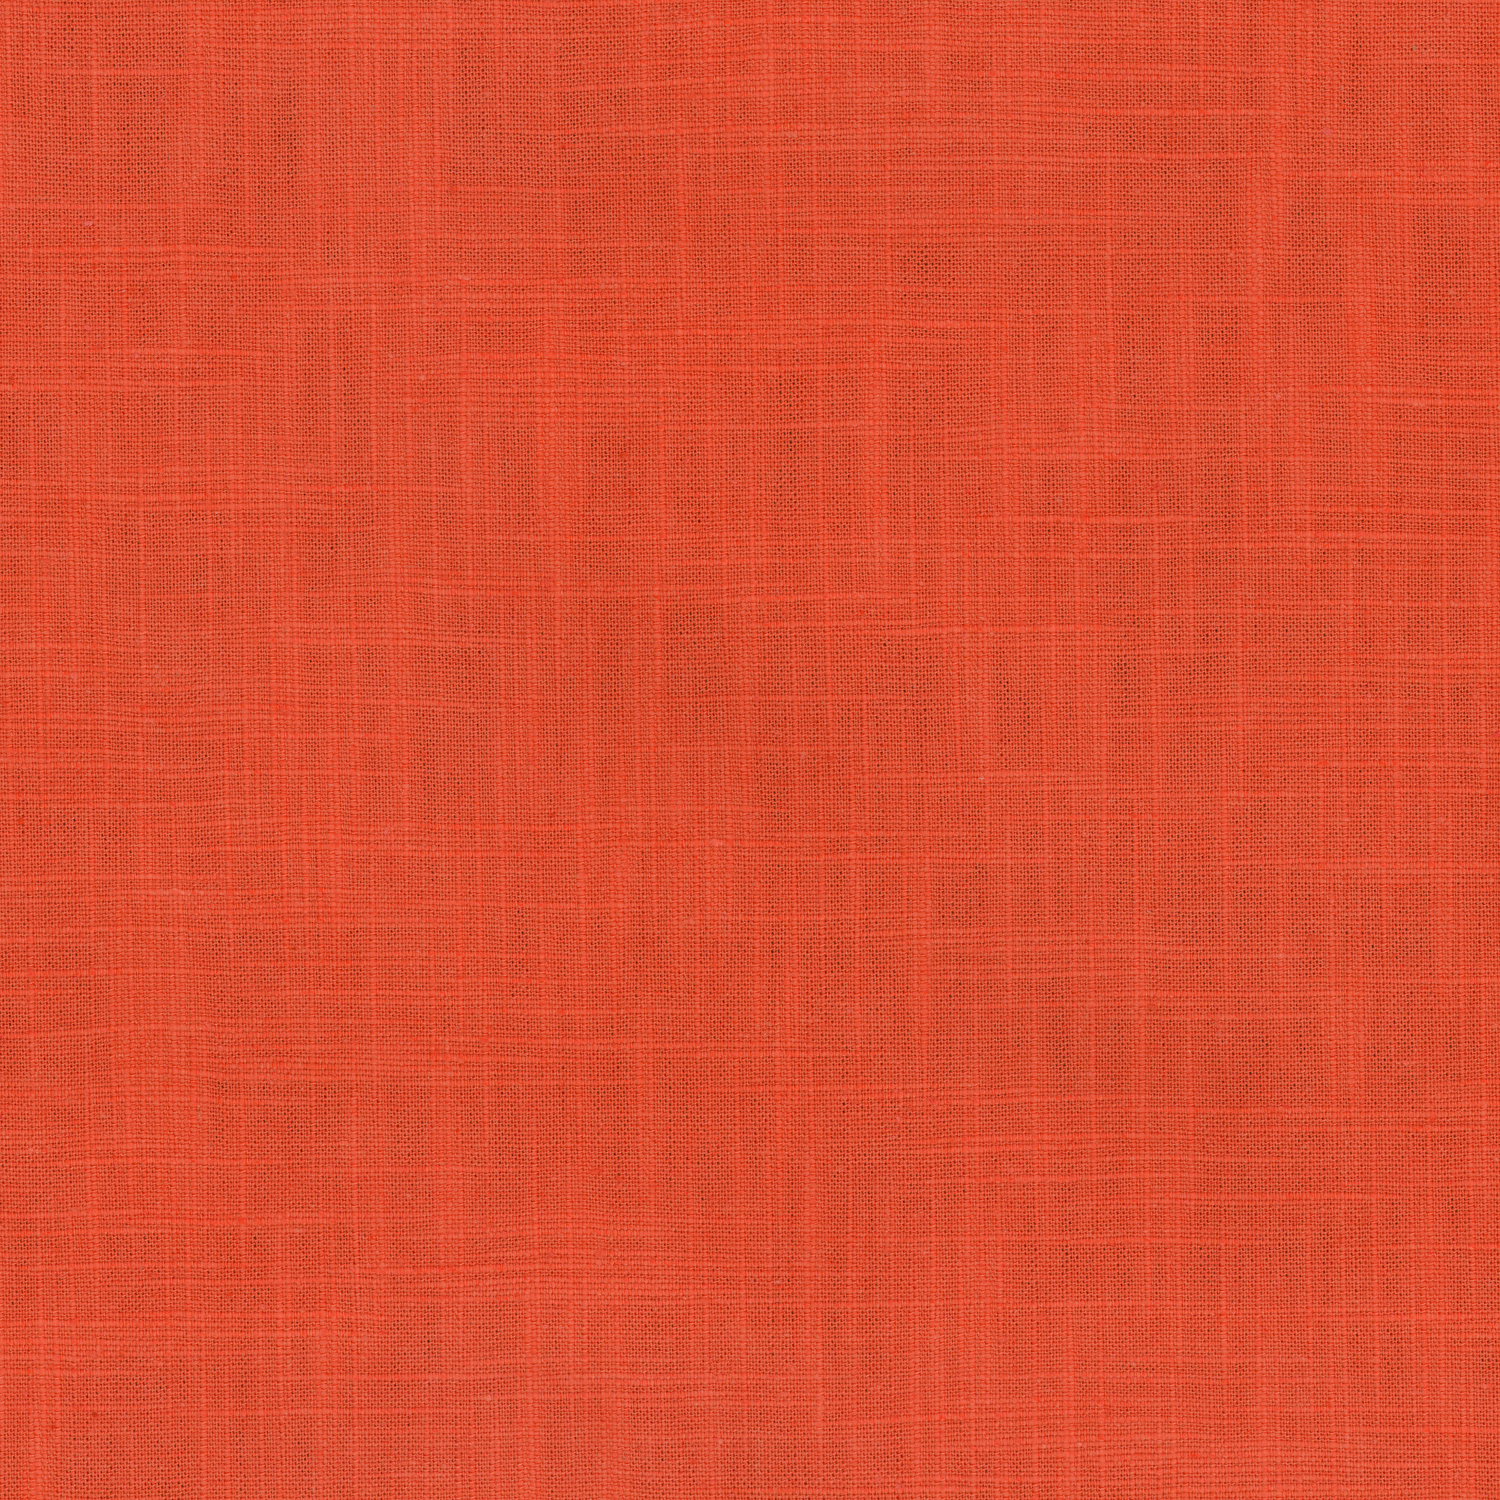 P/K Lifestyles Solid Fabric 54\u0022-Derby Solid/Persimmon